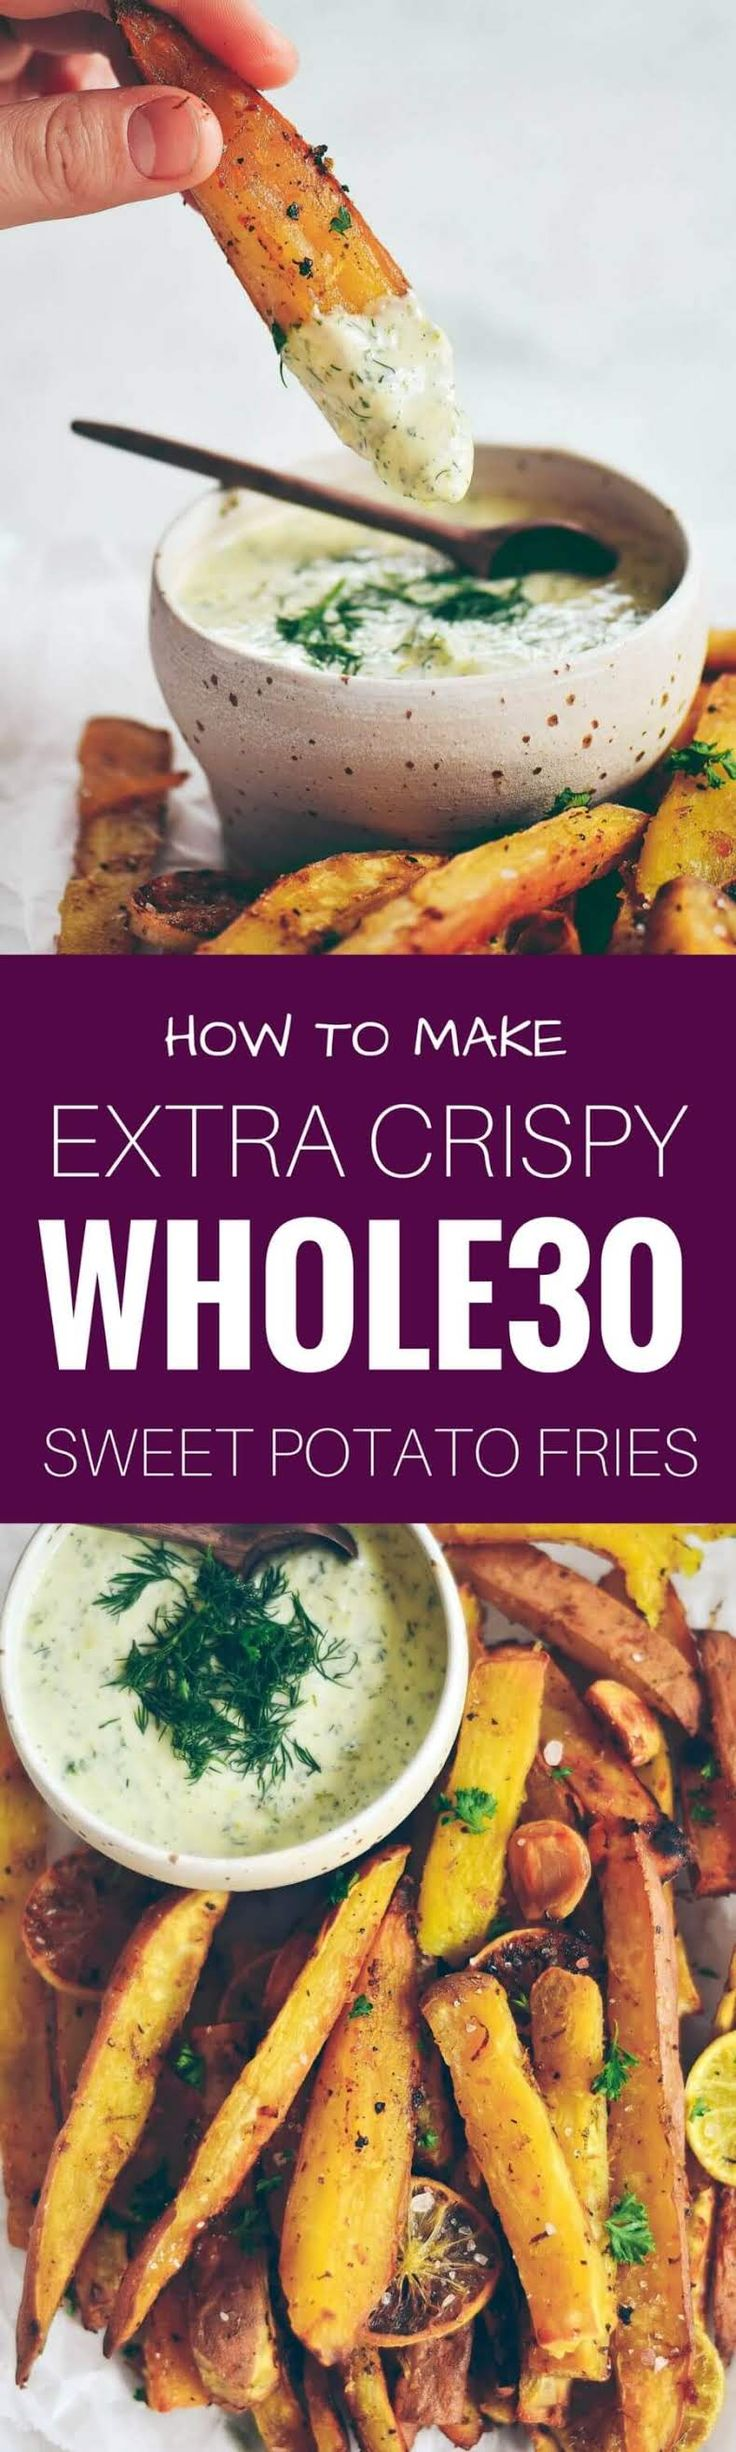 Extra crispy sweet potato fries and dipping sauce. Baked sweet potato fries. Easy sweet potato fries. Easy whole30 snacks. Paleo sweet potato fries recipe. Healthy sweet potato fries. Easy whole30 dinner recipes. Whole30 recipes. Whole30 lunch. Whole30 re http://healthyquickly.com